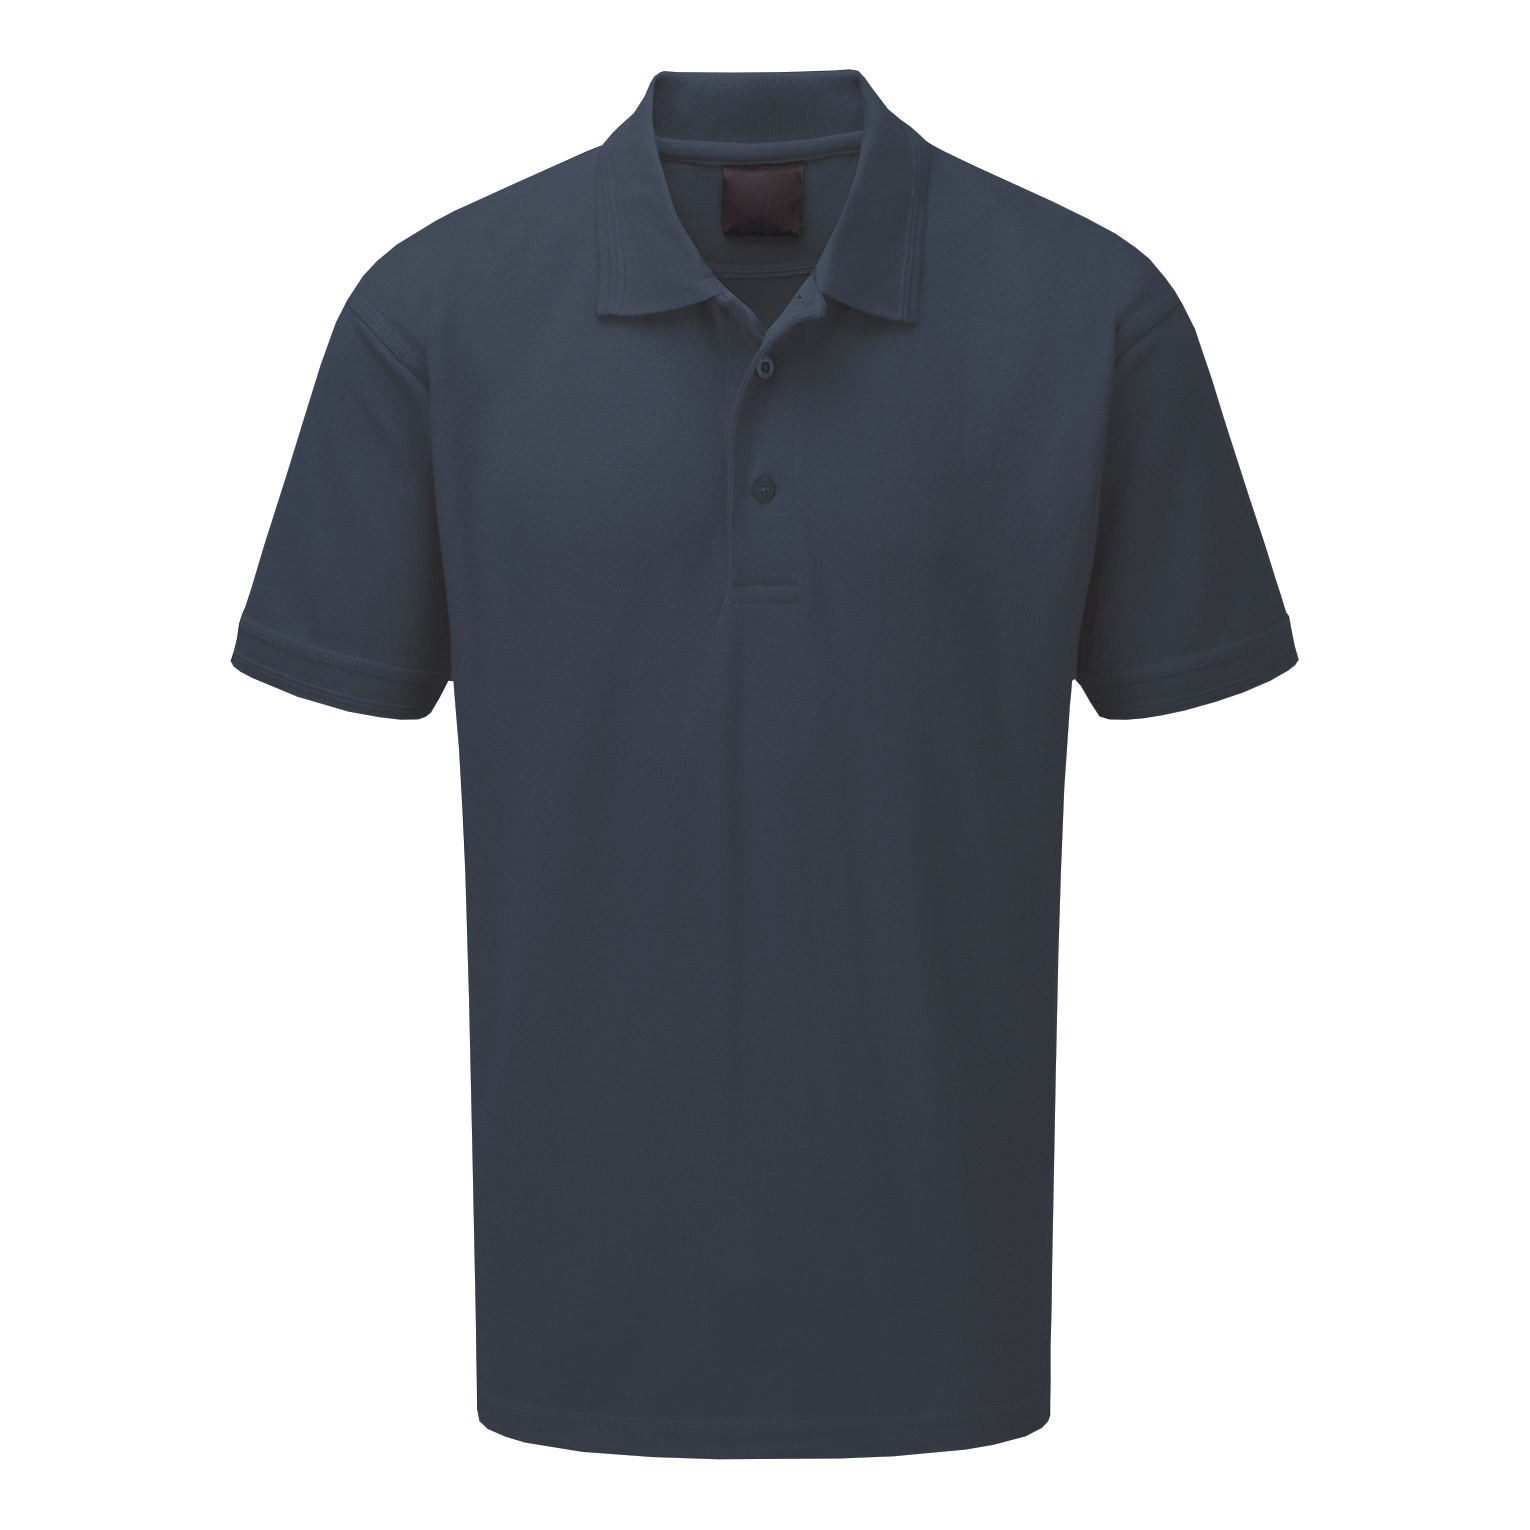 Premium Polo Triple Stitched Size 4XL Graphite *Approx 3 Day Leadtime*